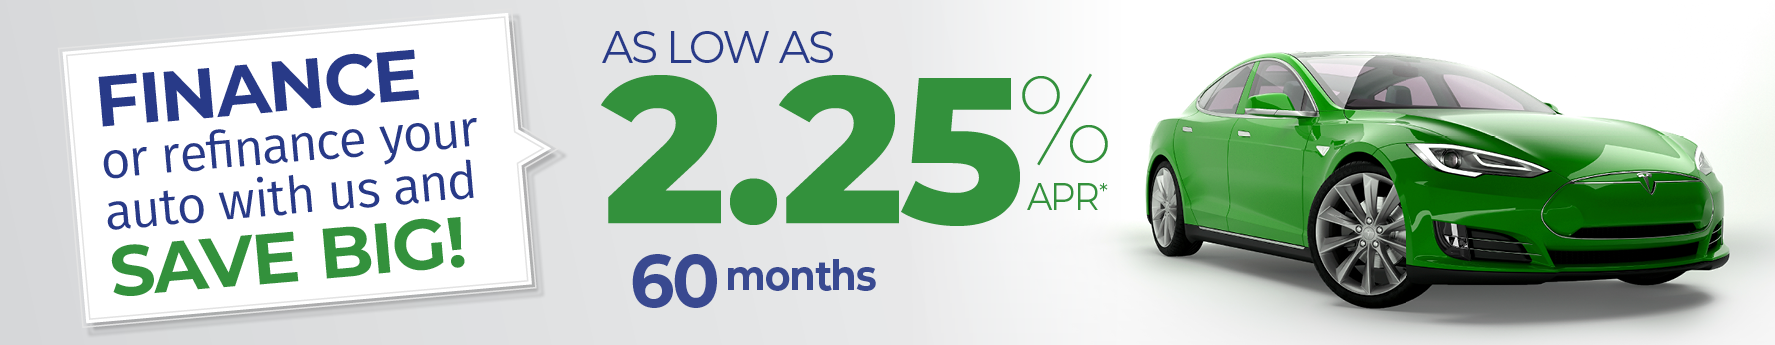 2.25% auto loans for 60 months